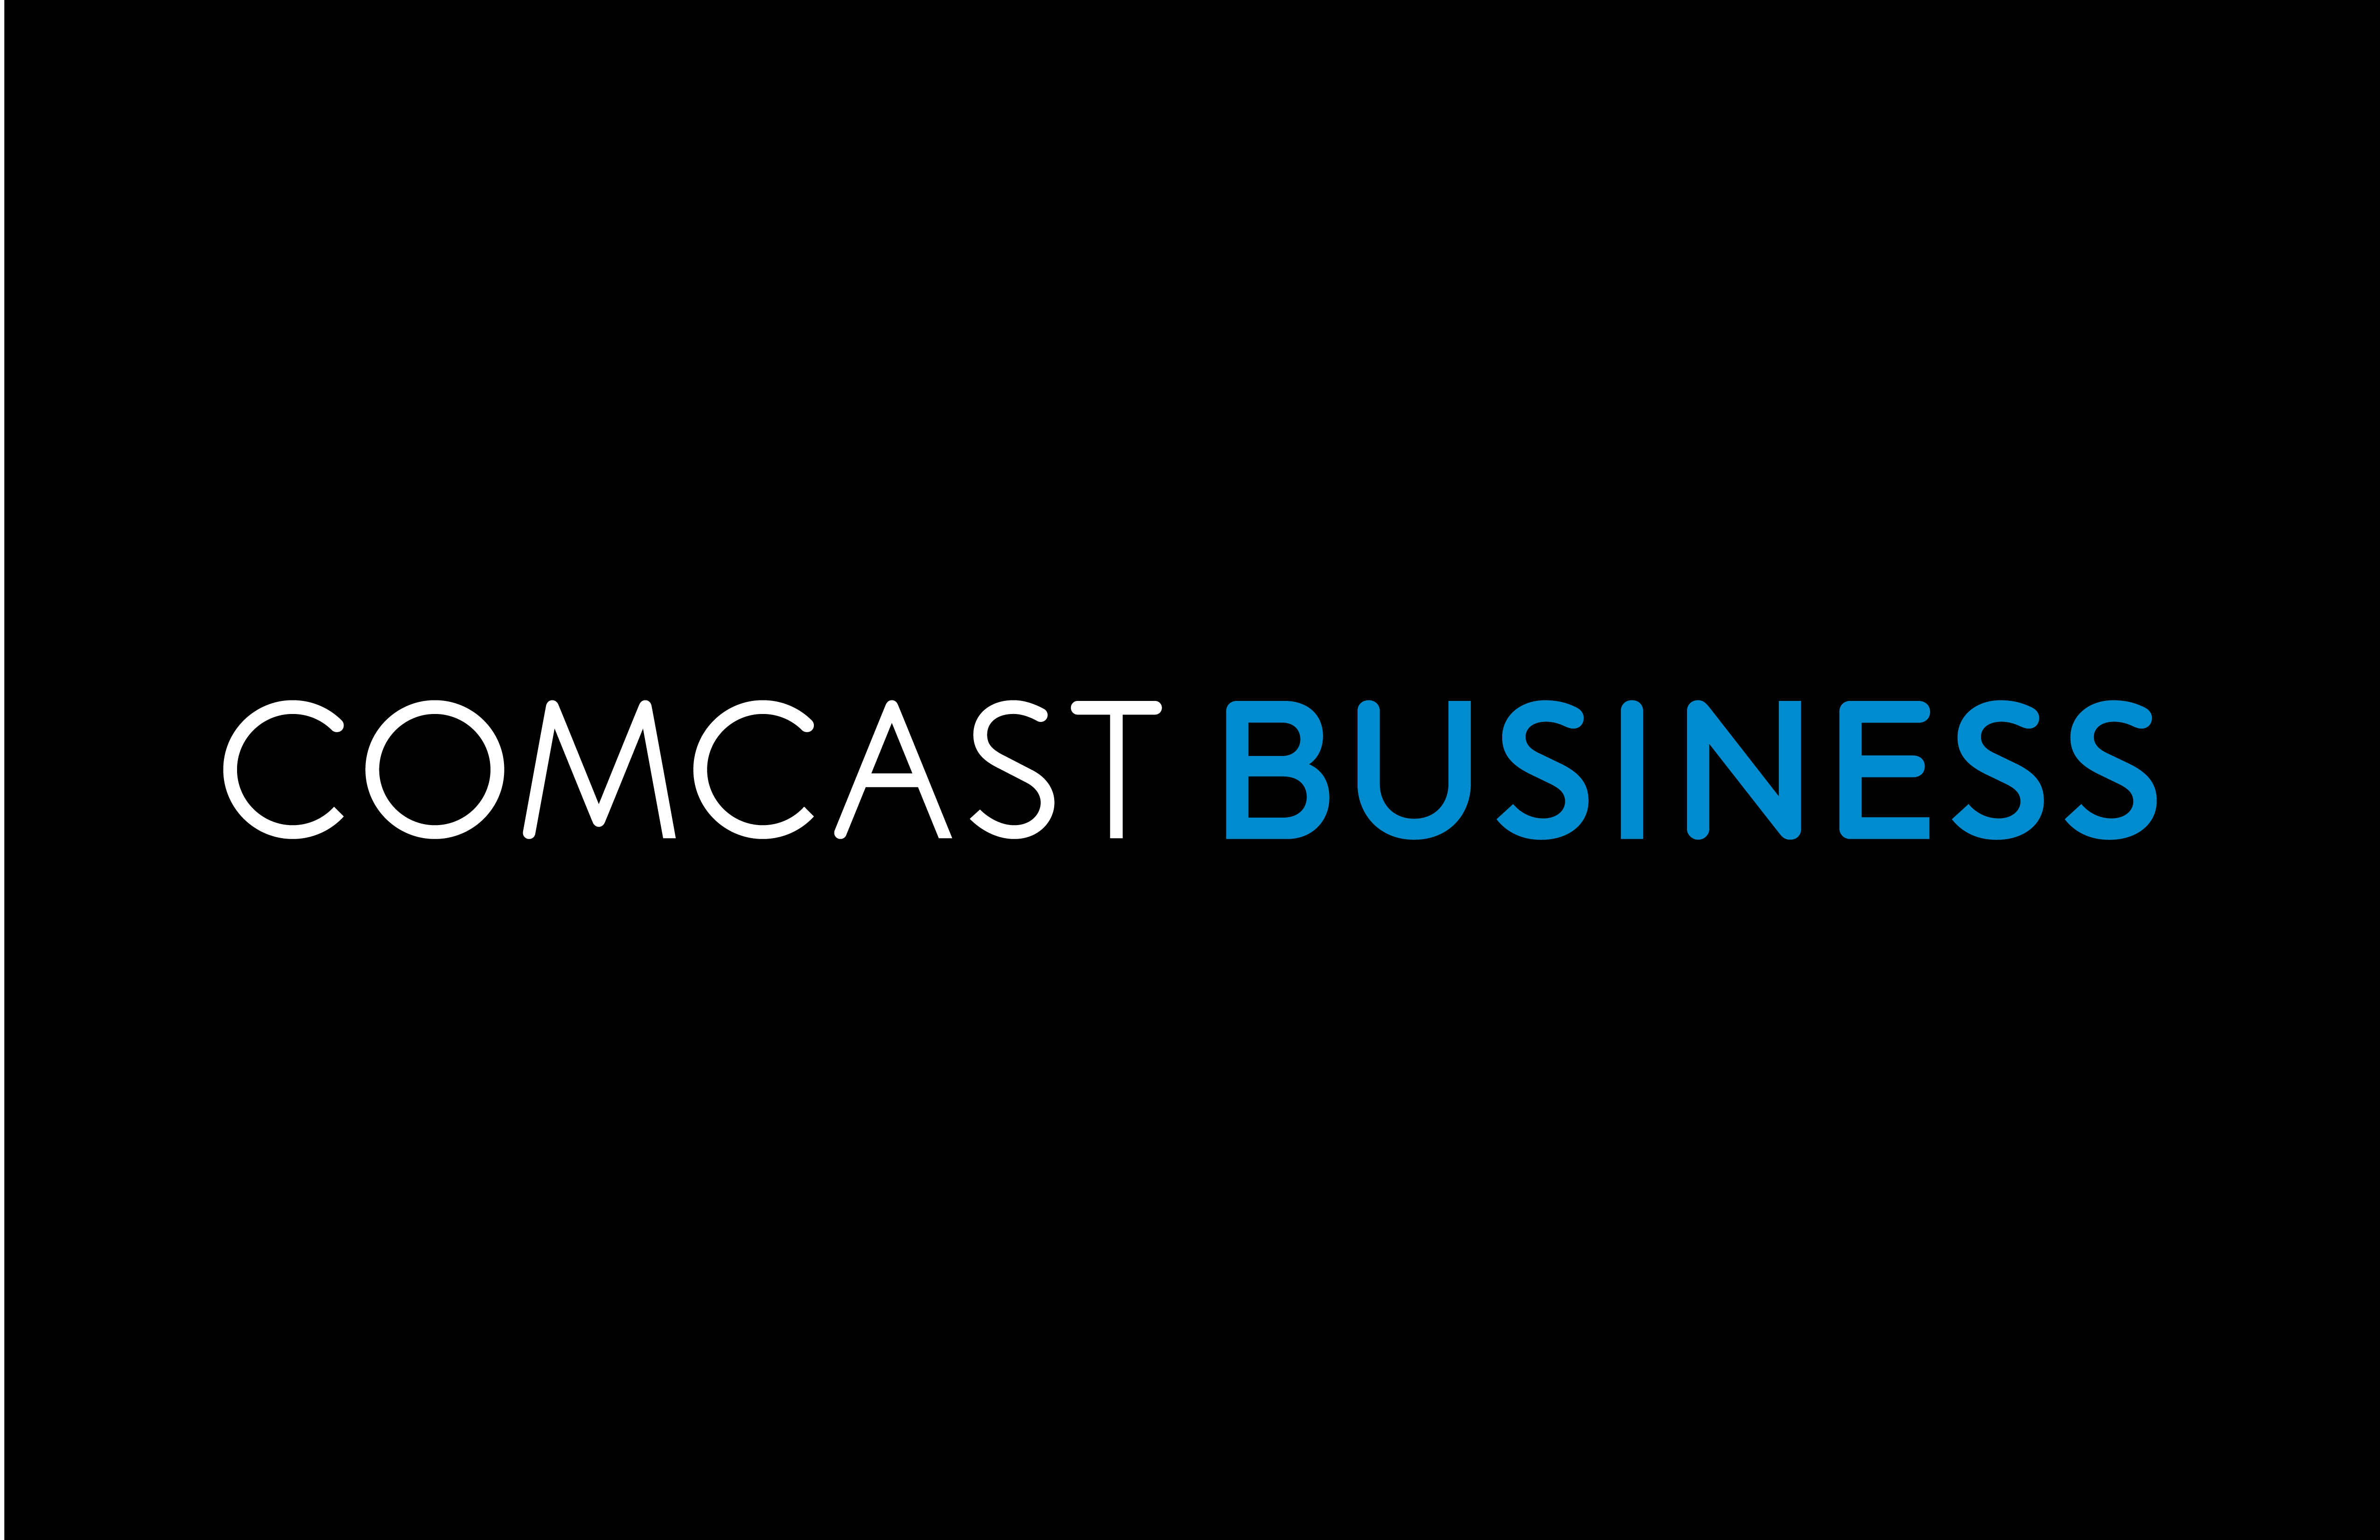 COMCAST_BUSINESS_LOGO_HOR_5.04_WHITE-BLUE-01